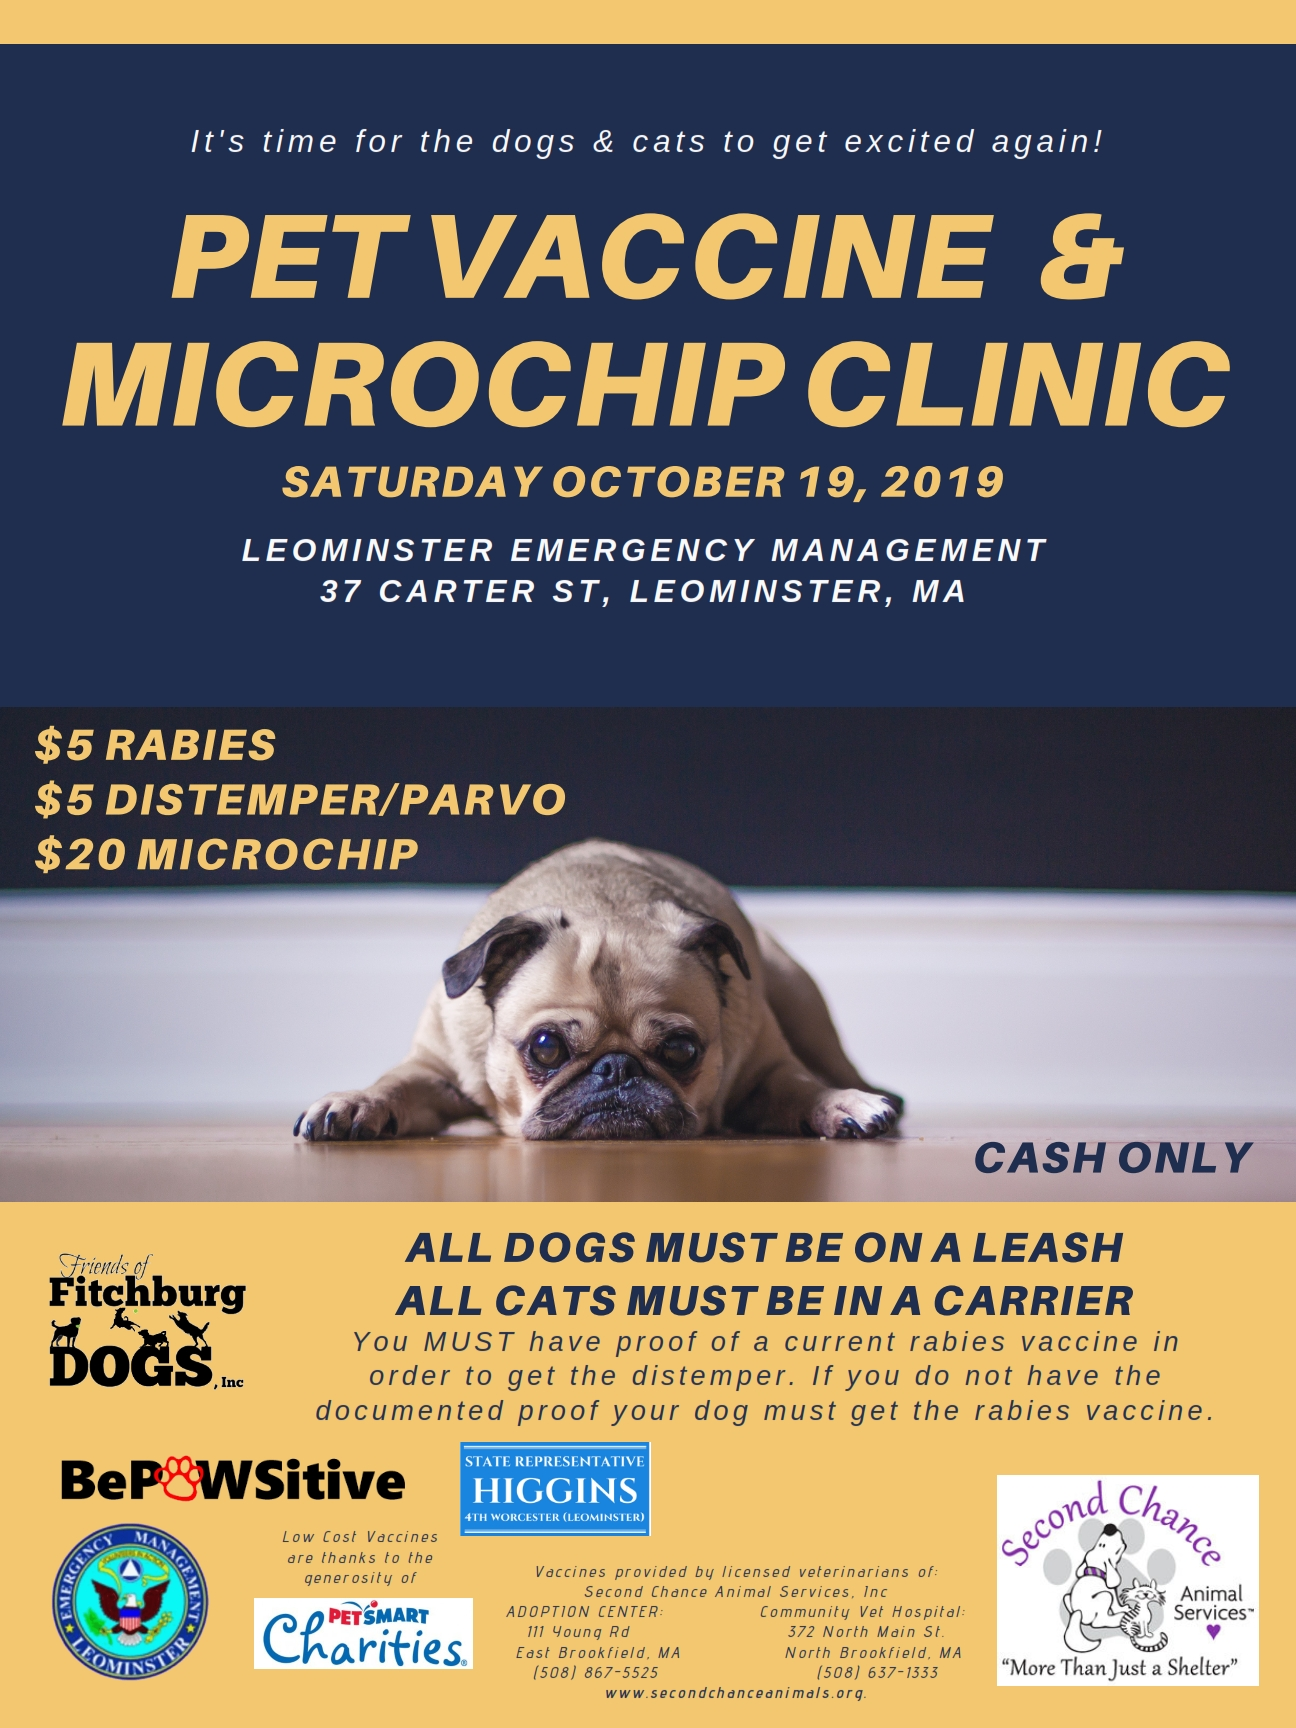 10-19-19 Vaccine & Microchip Clinic Leominster